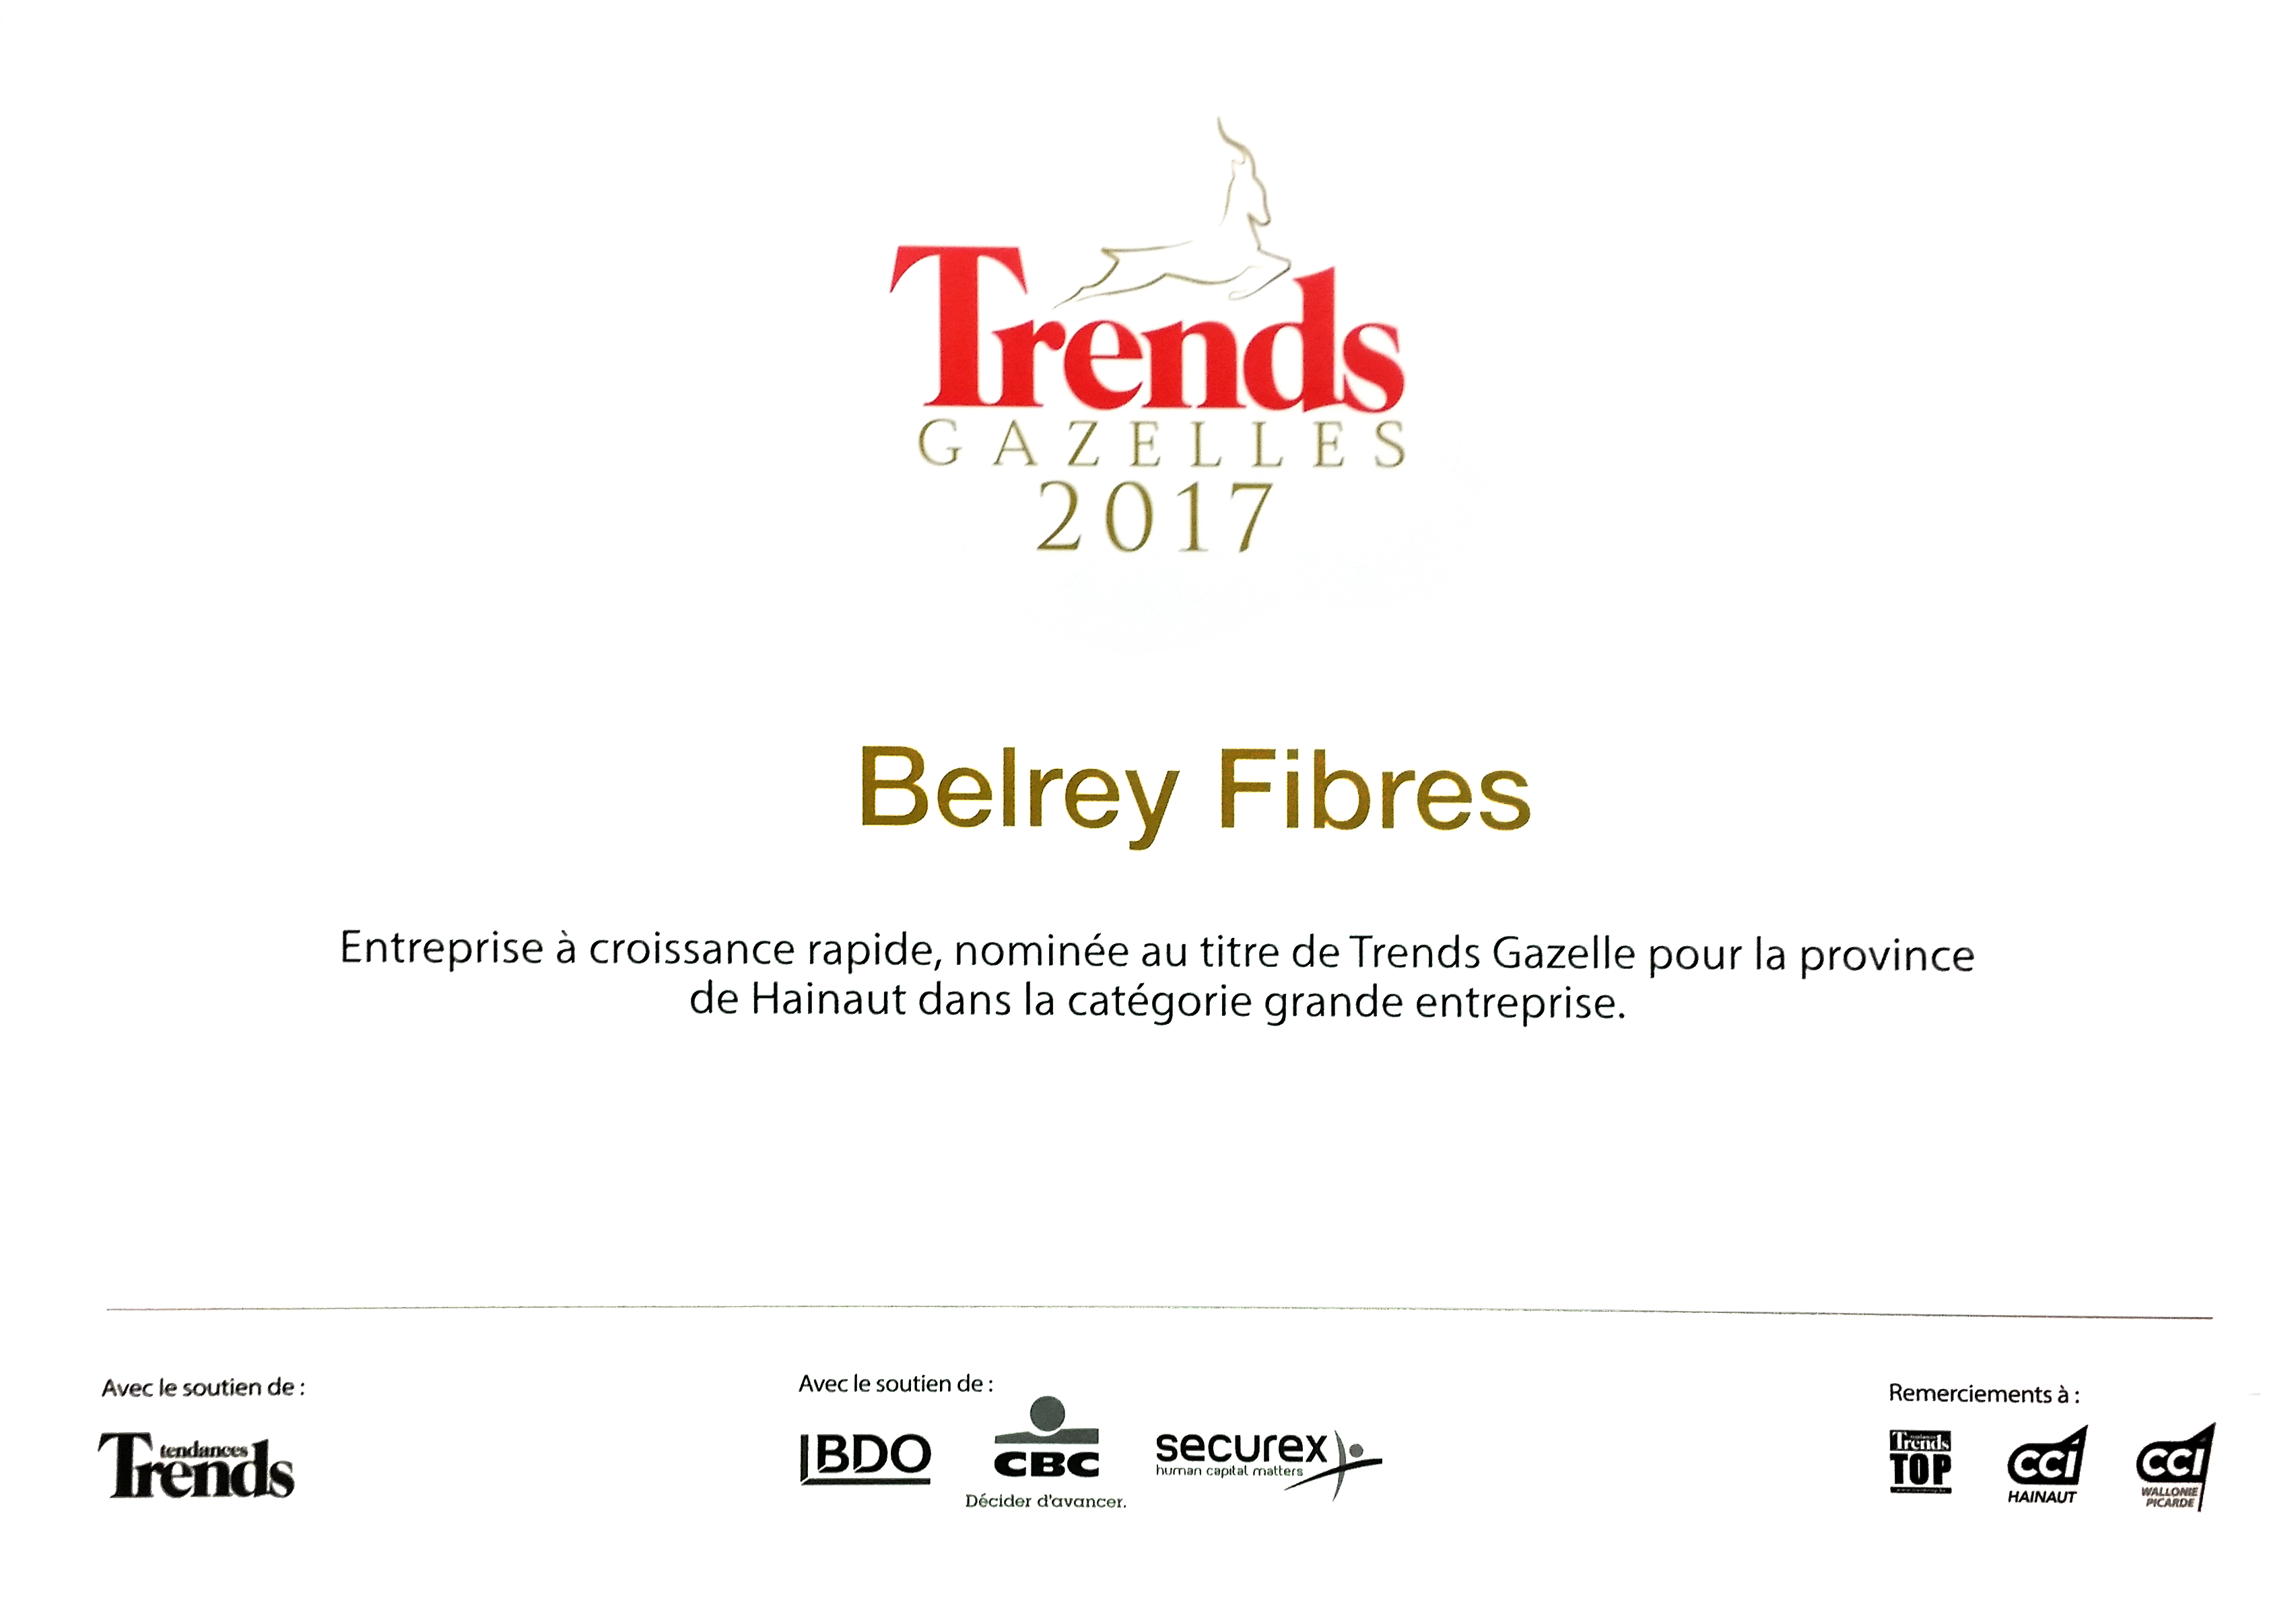 TRENDS GAZELLES 2017